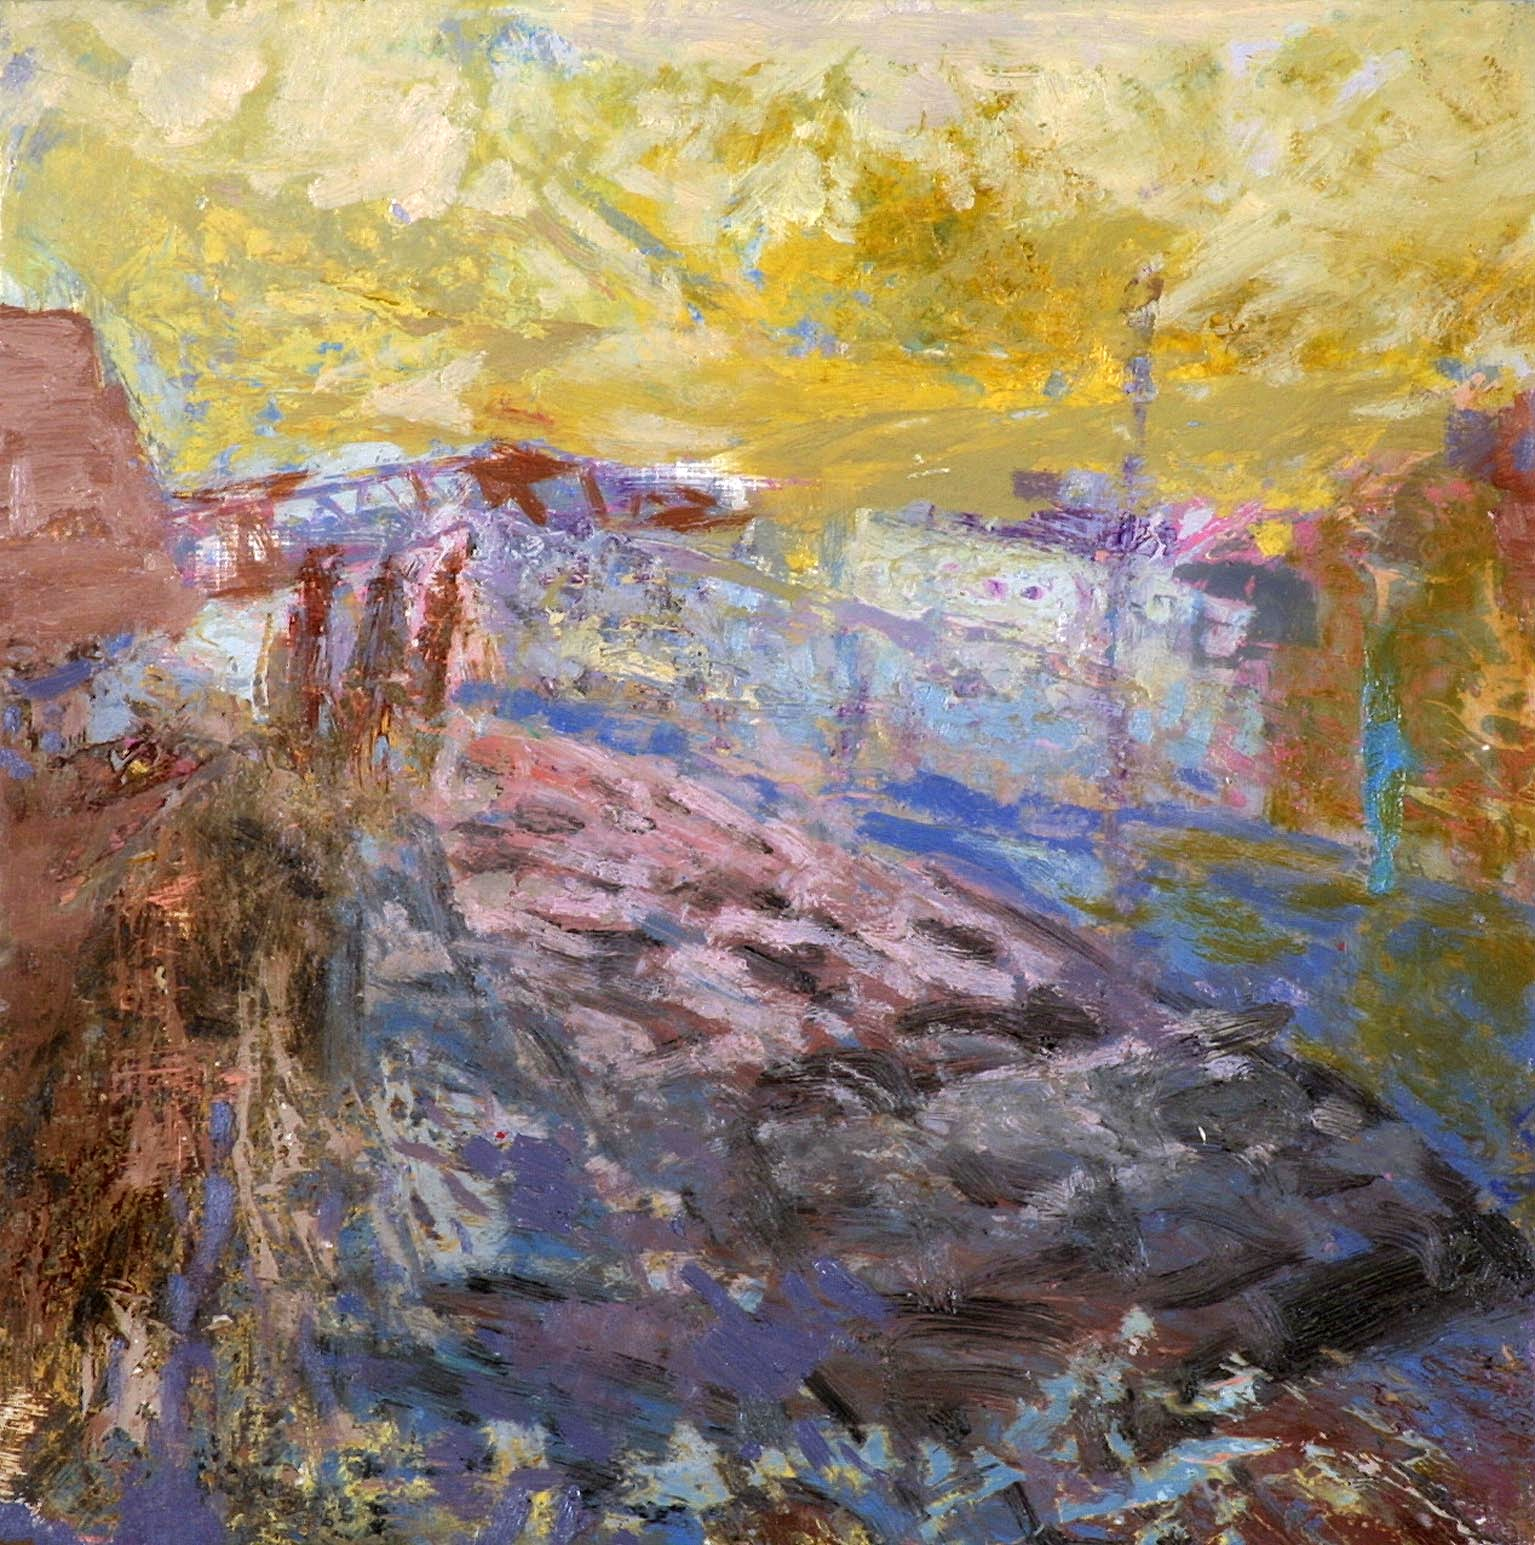 'Harbourside, Irvine', Oil, 30 x 30 cm